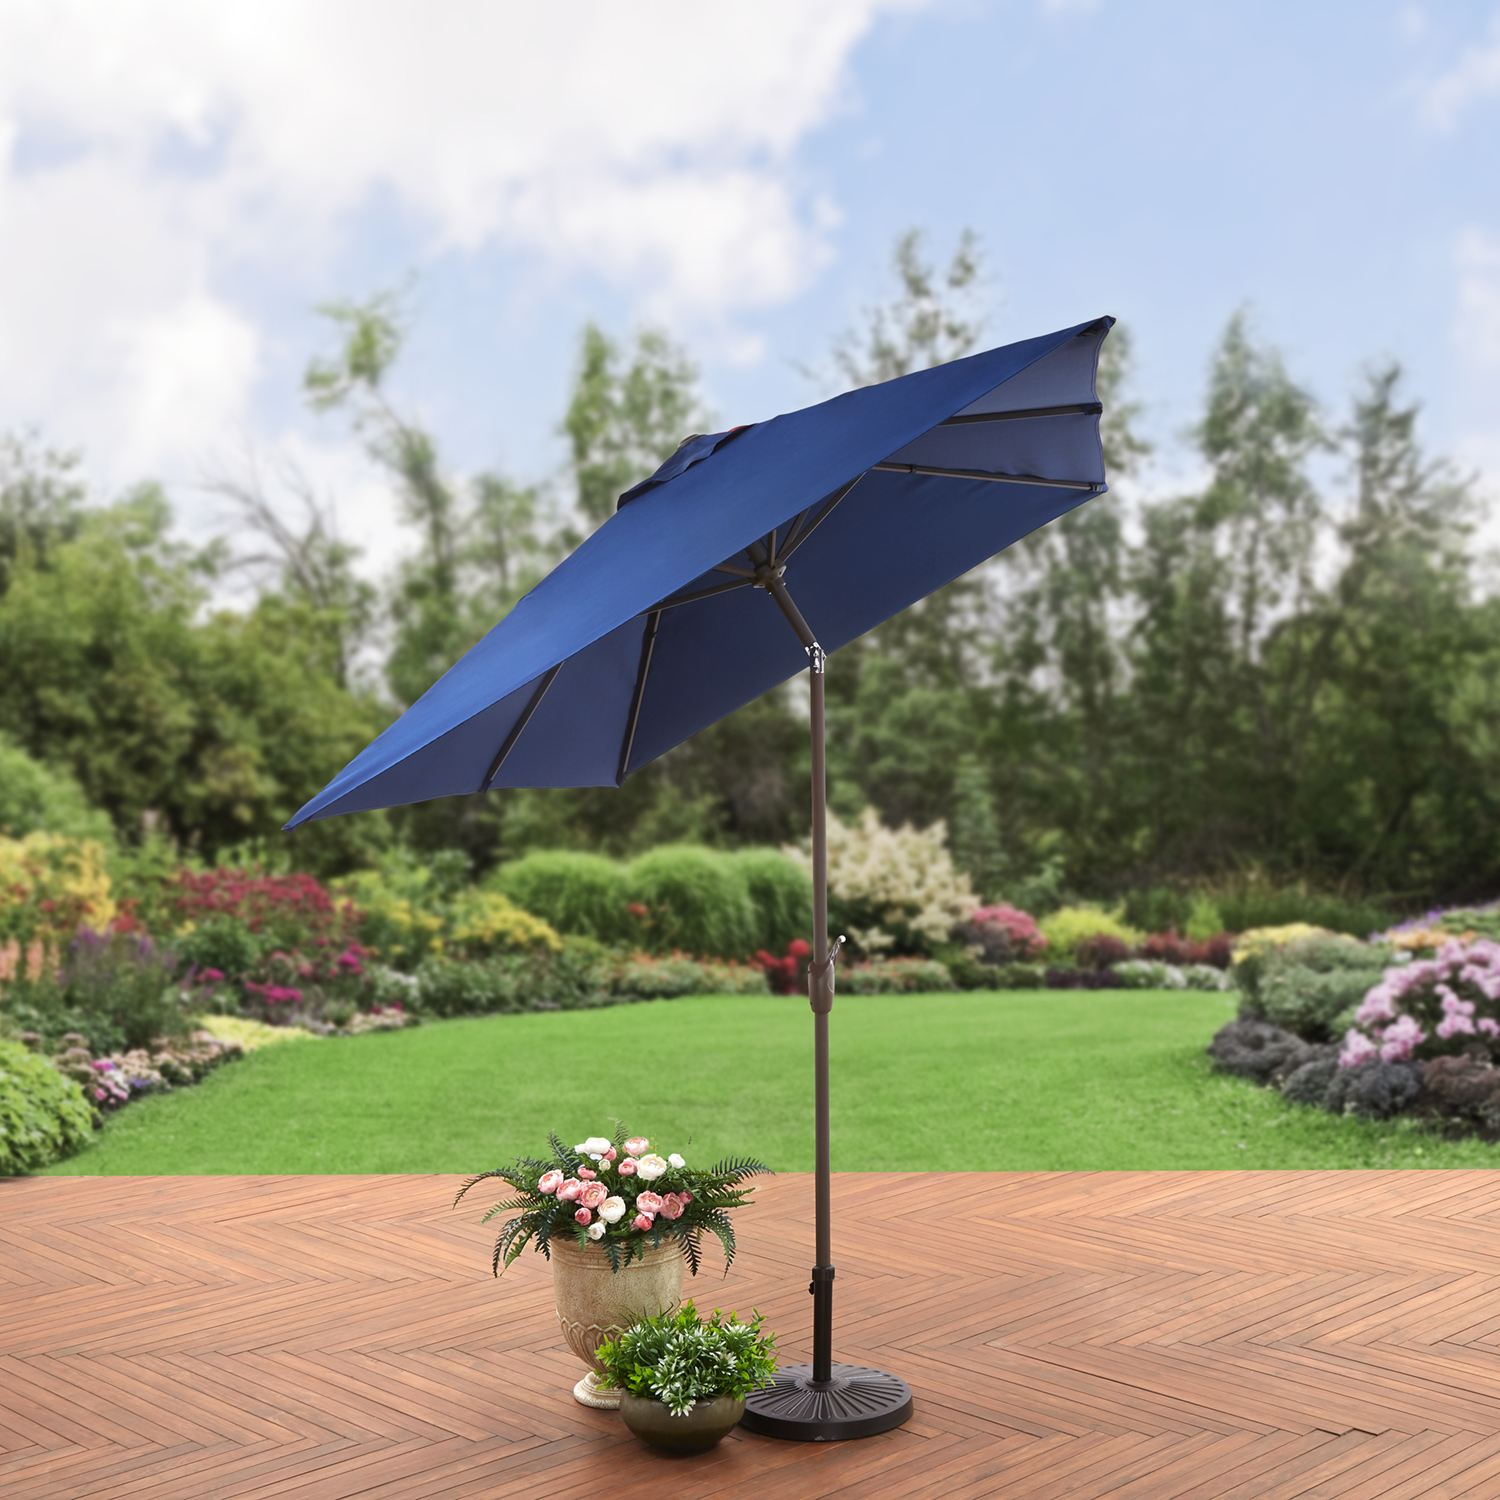 Better Homes And Gardens 6.2 X 9.6 Ft. Rectangular Patio Umbrella    Walmart.com